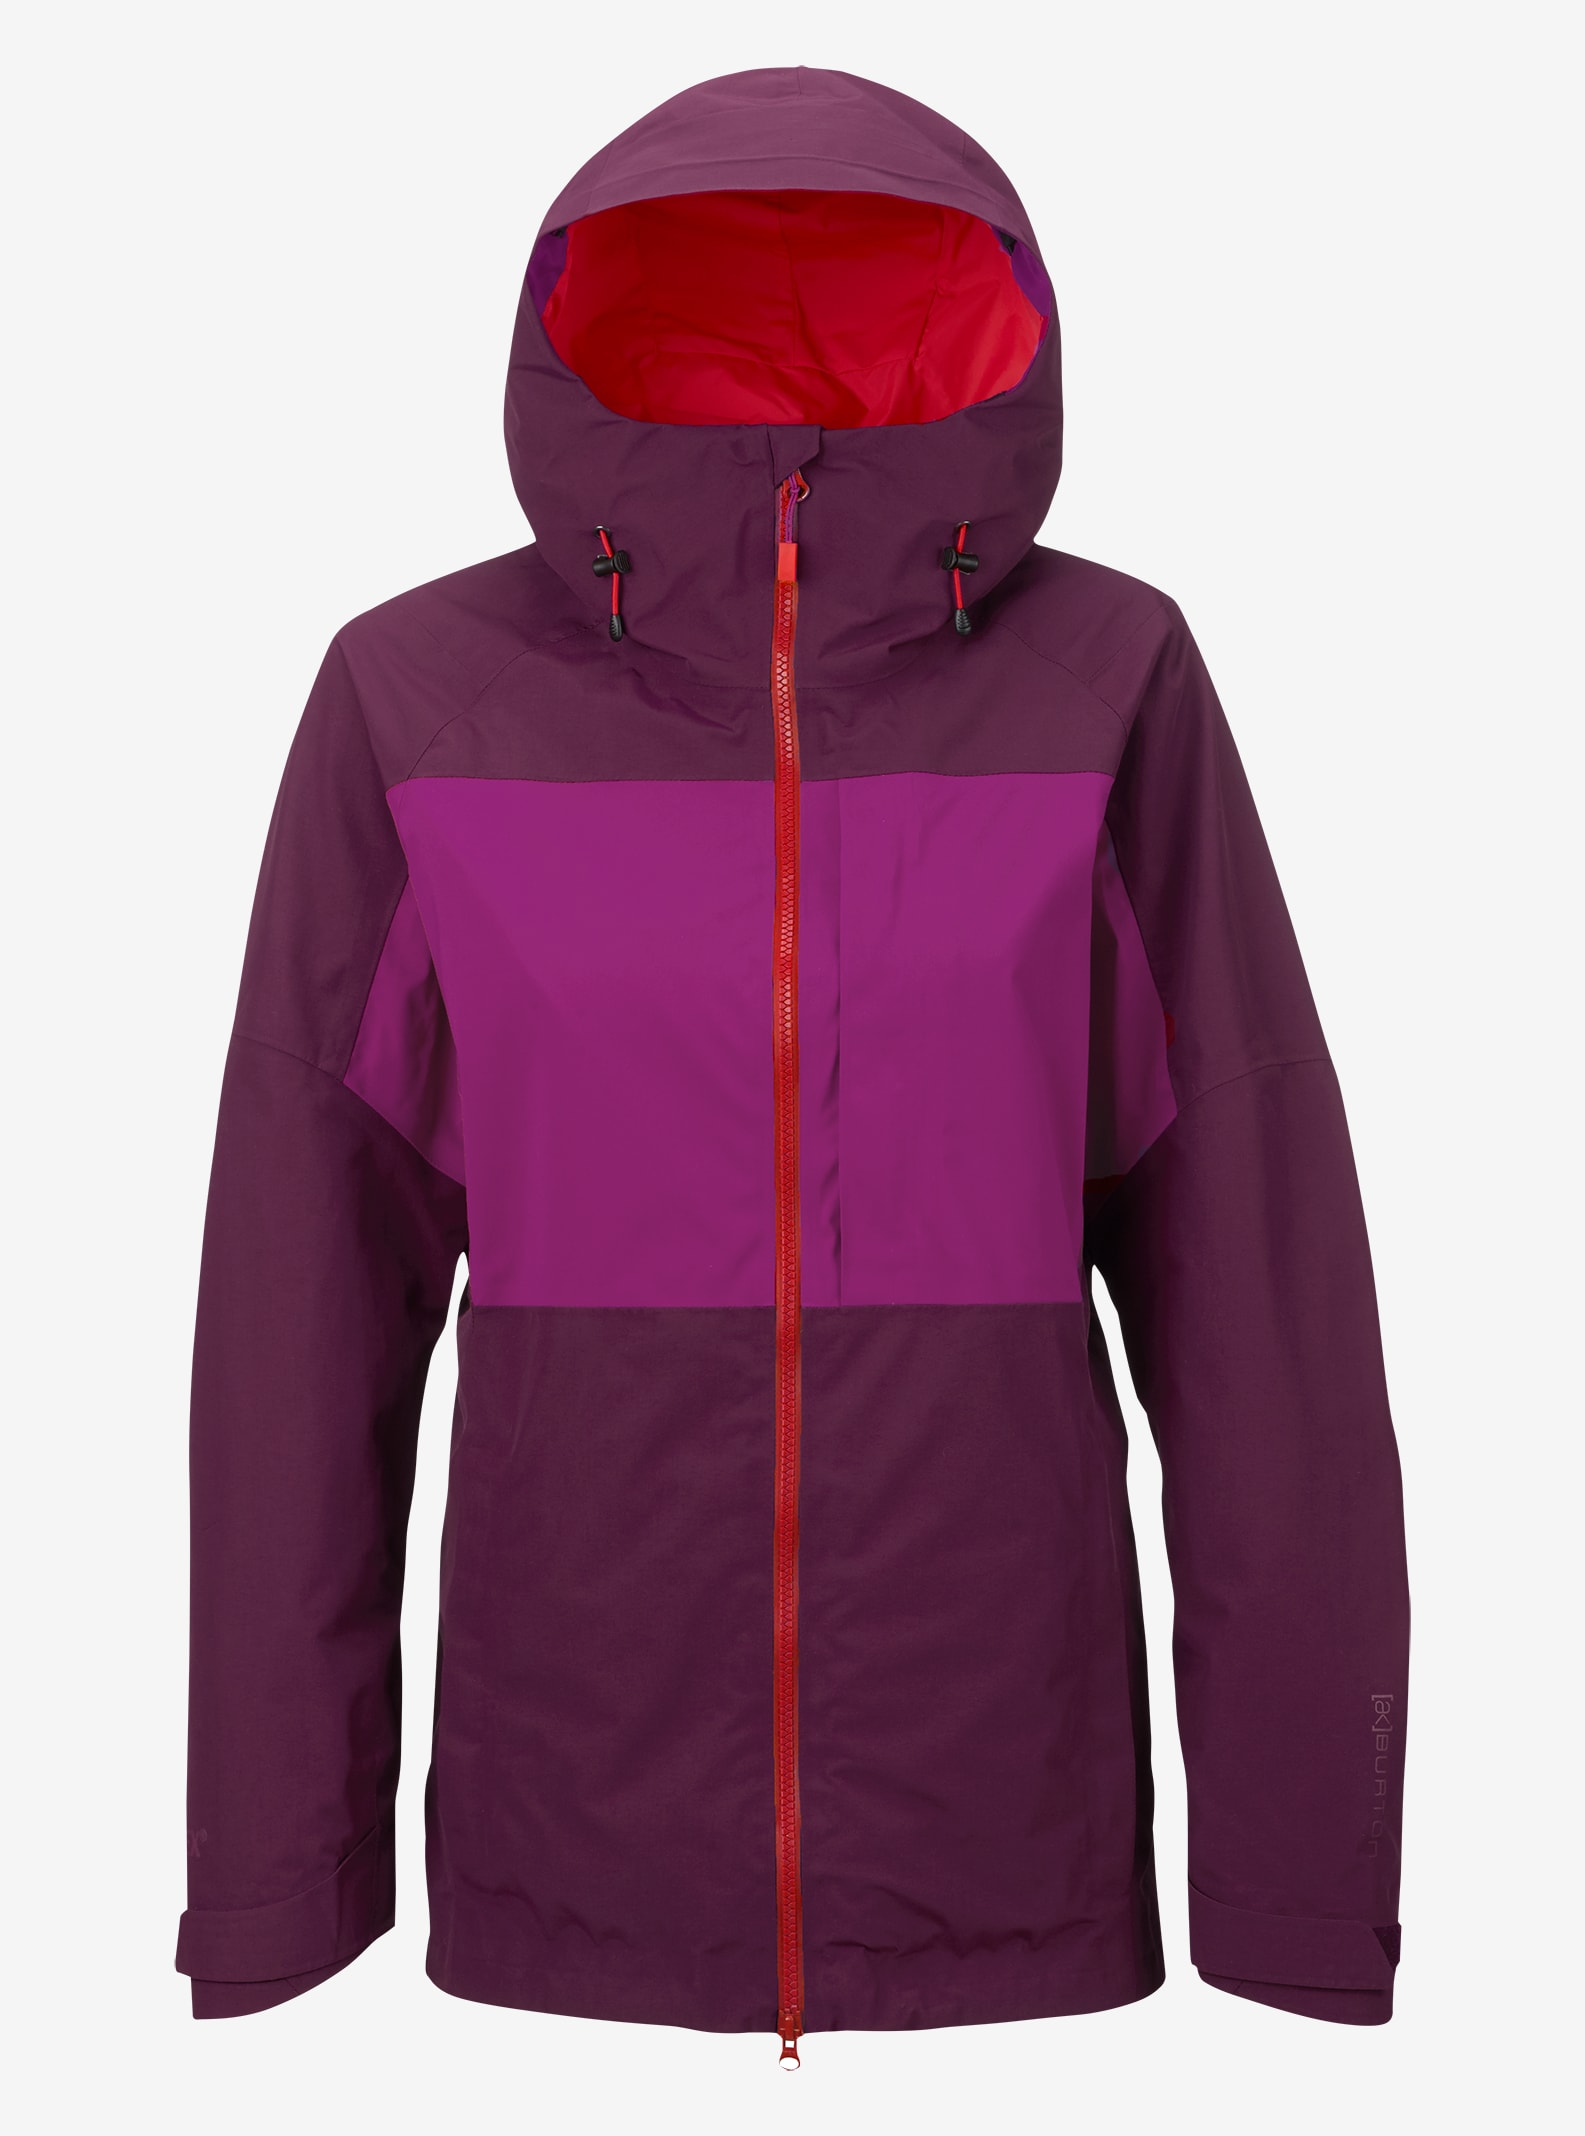 Women's Burton [ak] GORE‑TEX® 2L Blade Jacket shown in Starling / Grapeseed